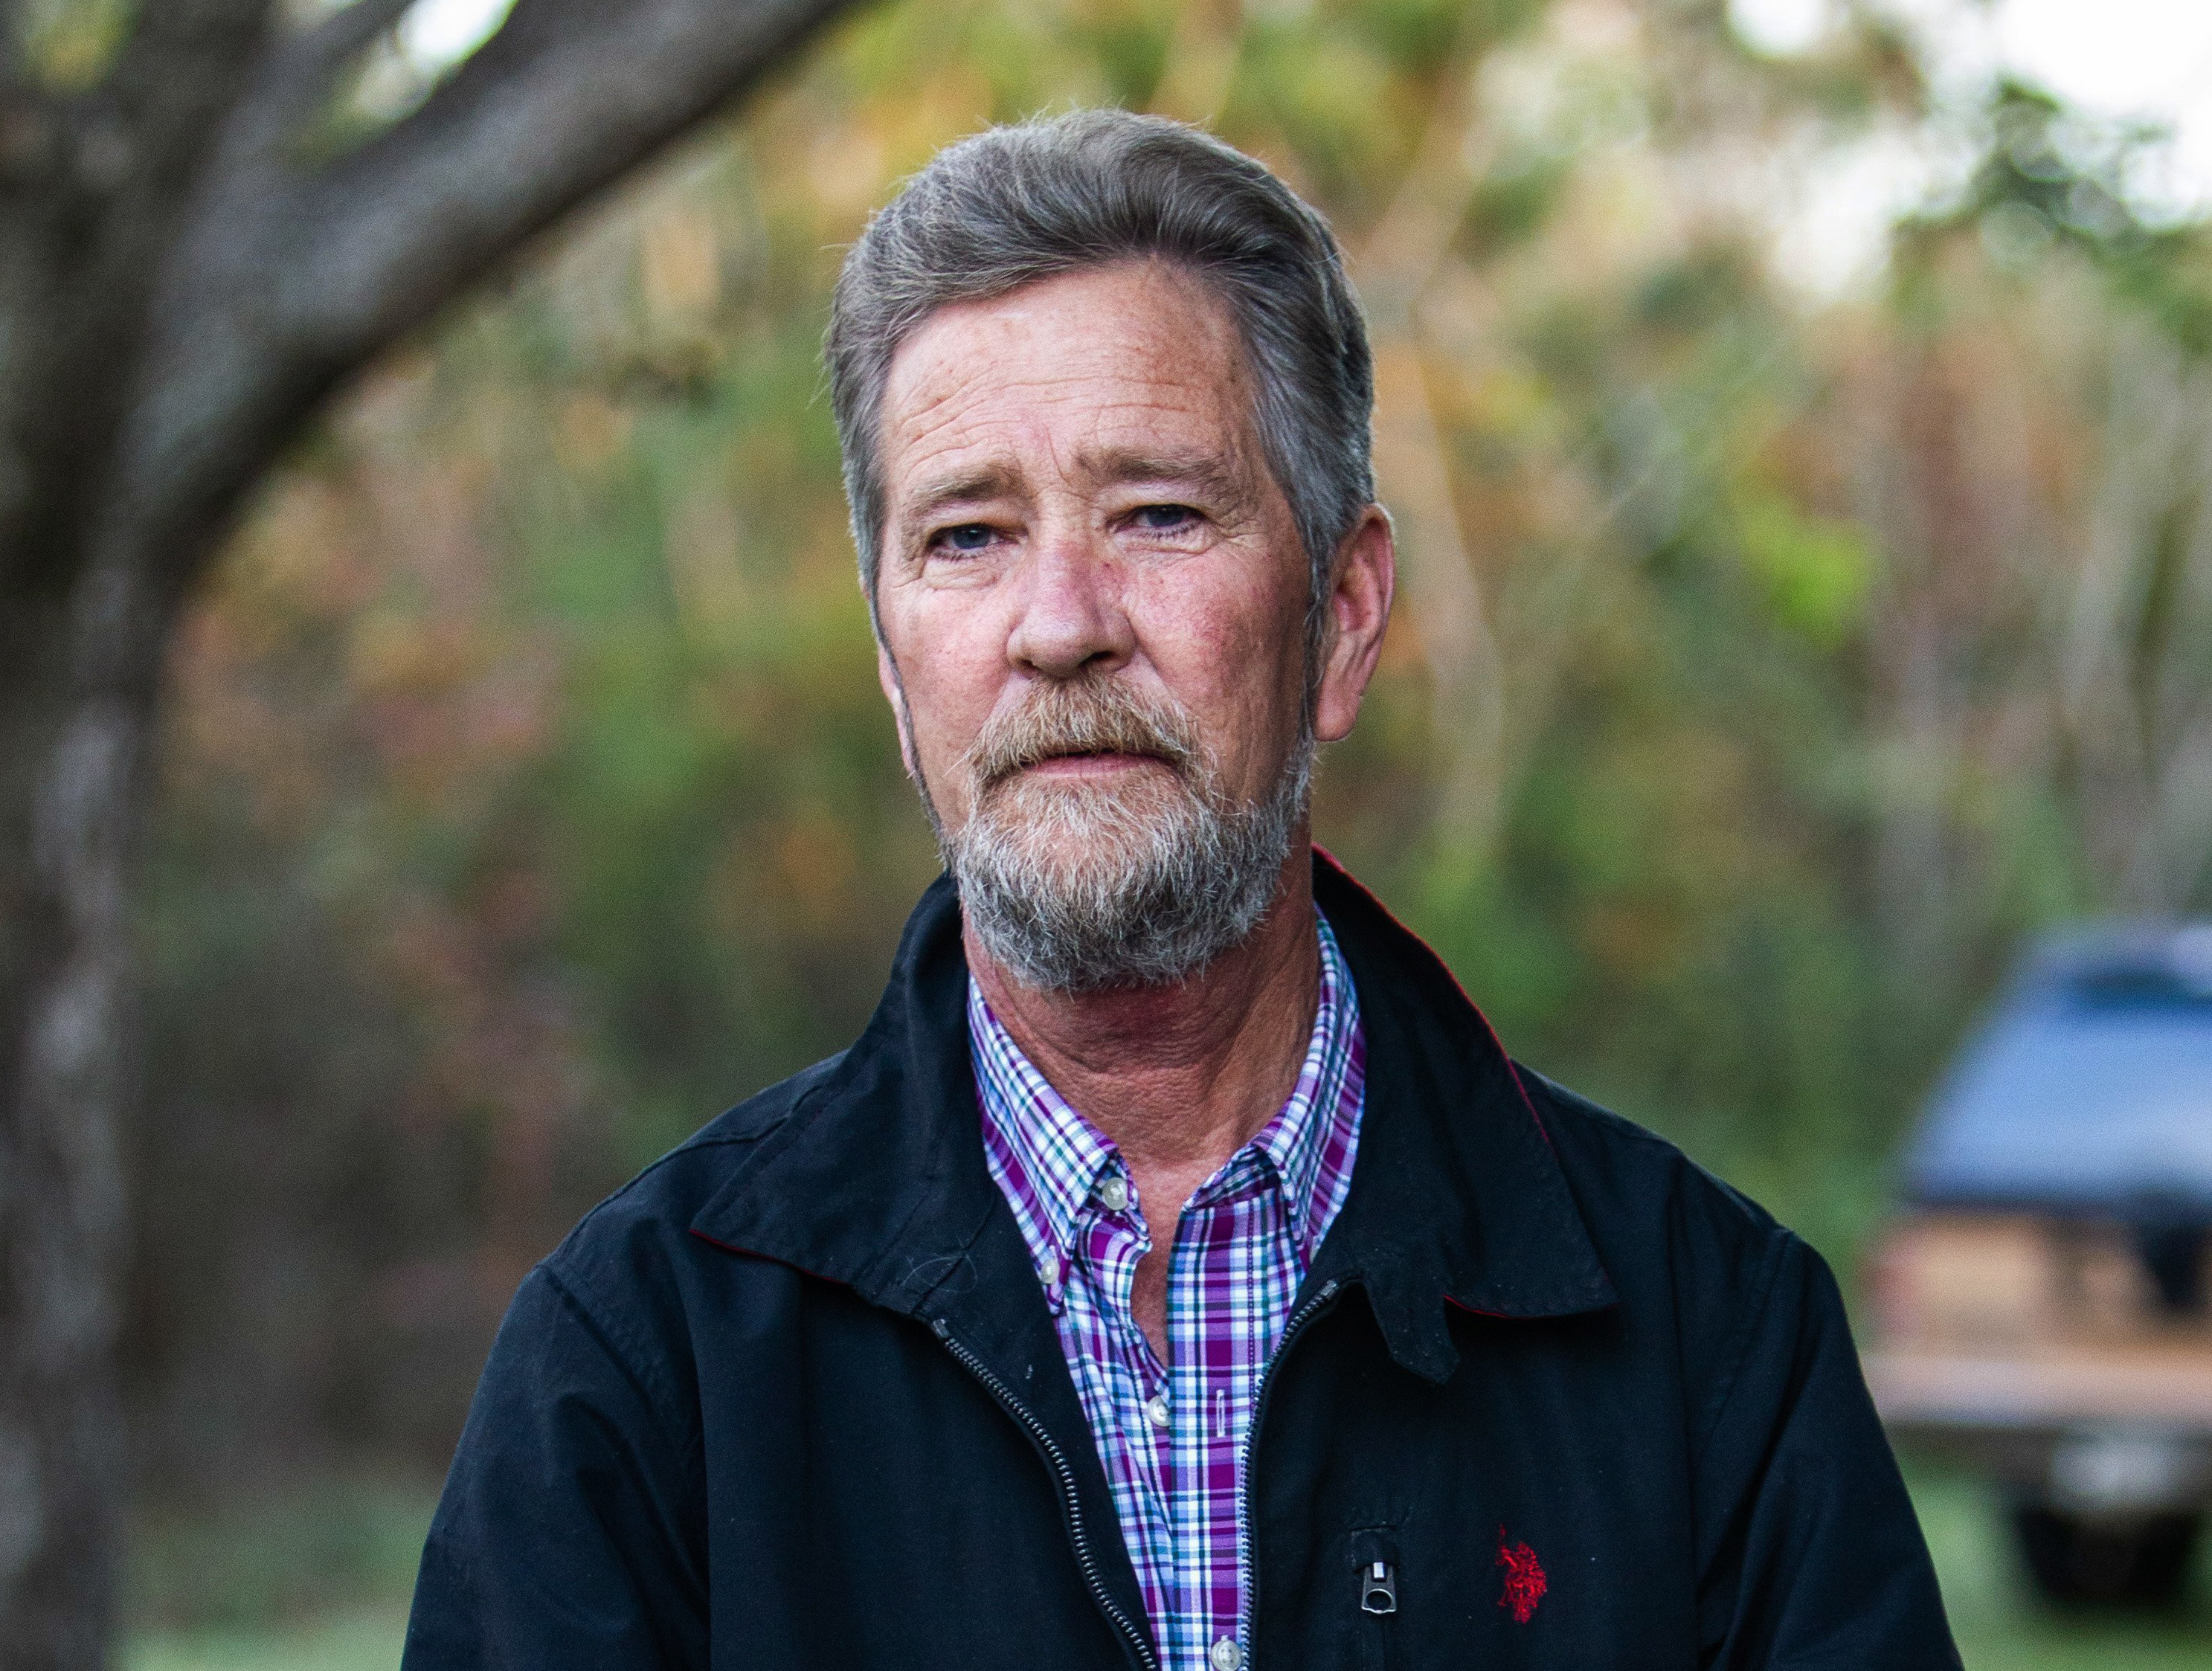 Leslie McCrae Dowless Jr. poses for a portrait outside of his home in Bladenboro, N.C. on Dec. 5, 2018. (Travis Long/The News & Observer via AP, File)